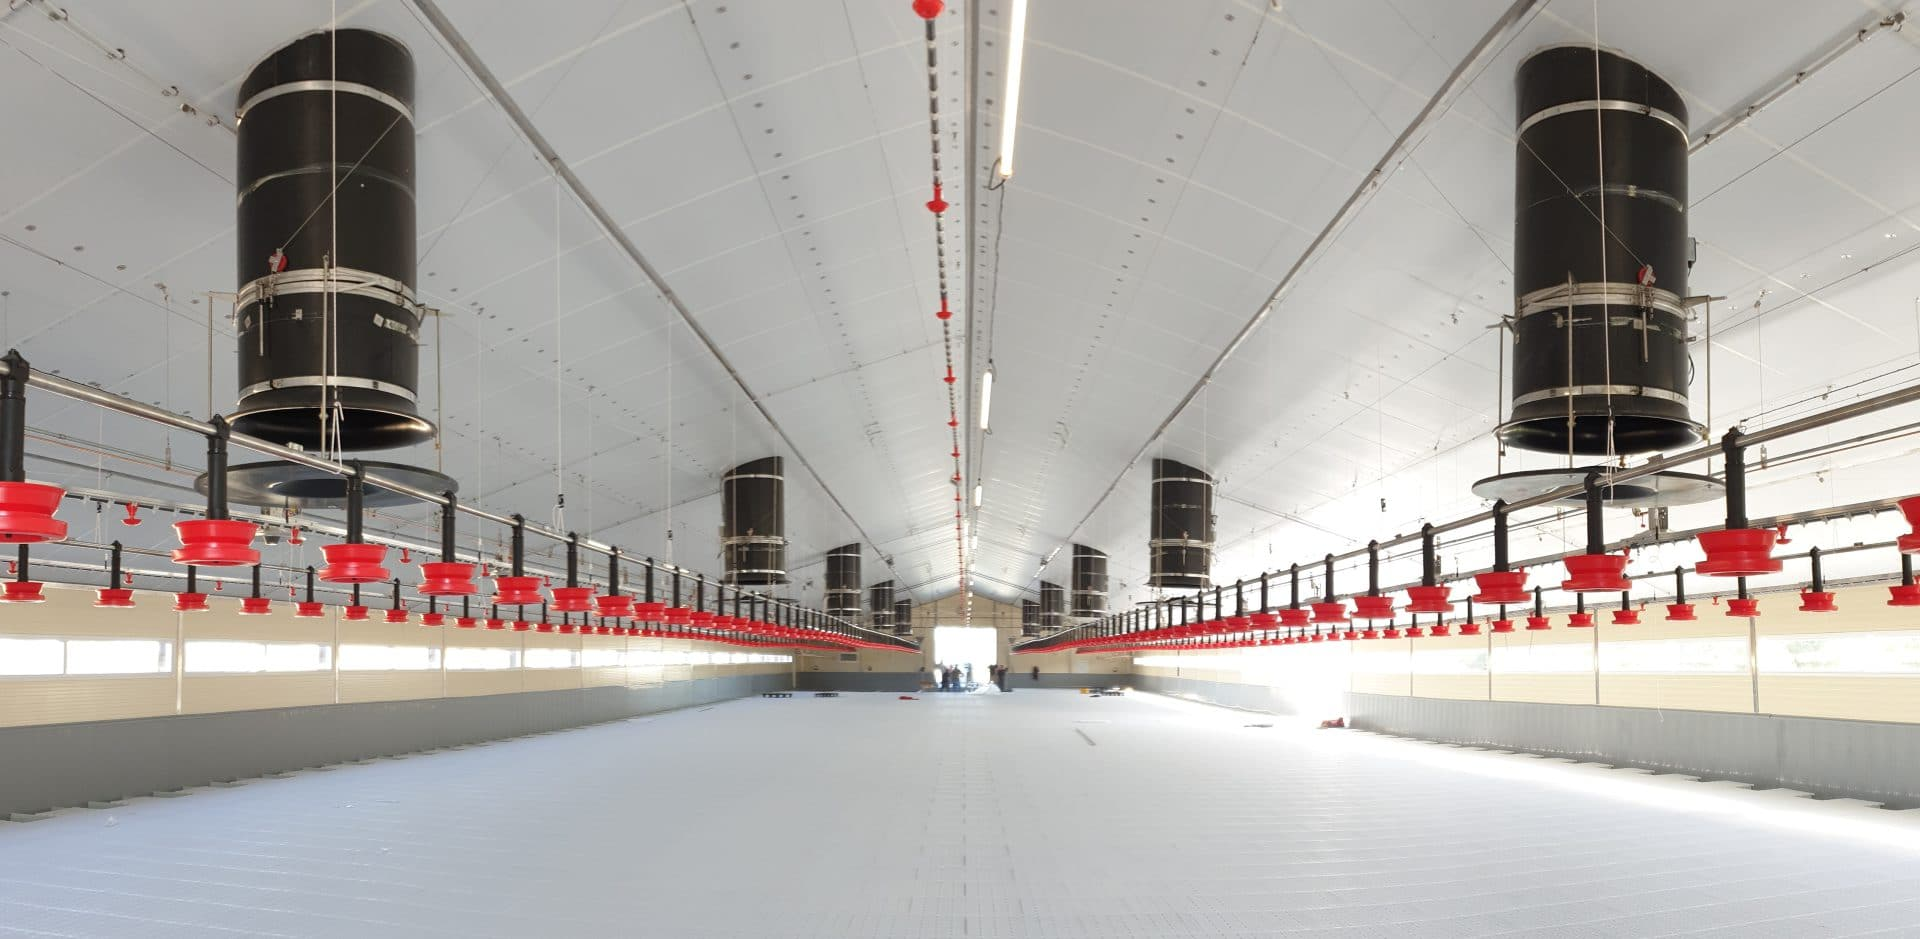 Wide poultry house with equal pressure ventilation chimneys